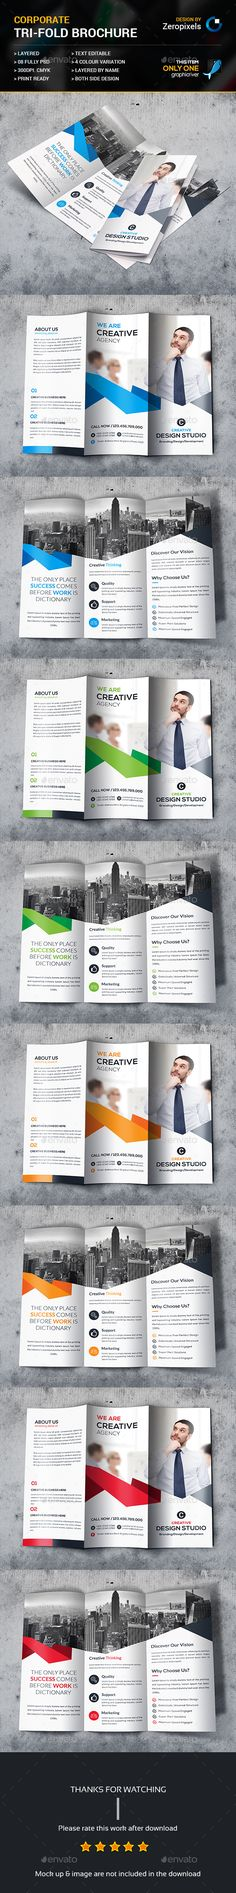 Explore more than brochure design templates to display product features and portfolios. Choose from brochure templates for pamphlets, proposals, reports, and manuals in a variety of styles. Booklet Design, Brochure Design, Business Letter Format, Corporate Id, Invoice Template, Proposal Templates, Print Templates, Business Flyer, Editorial Design